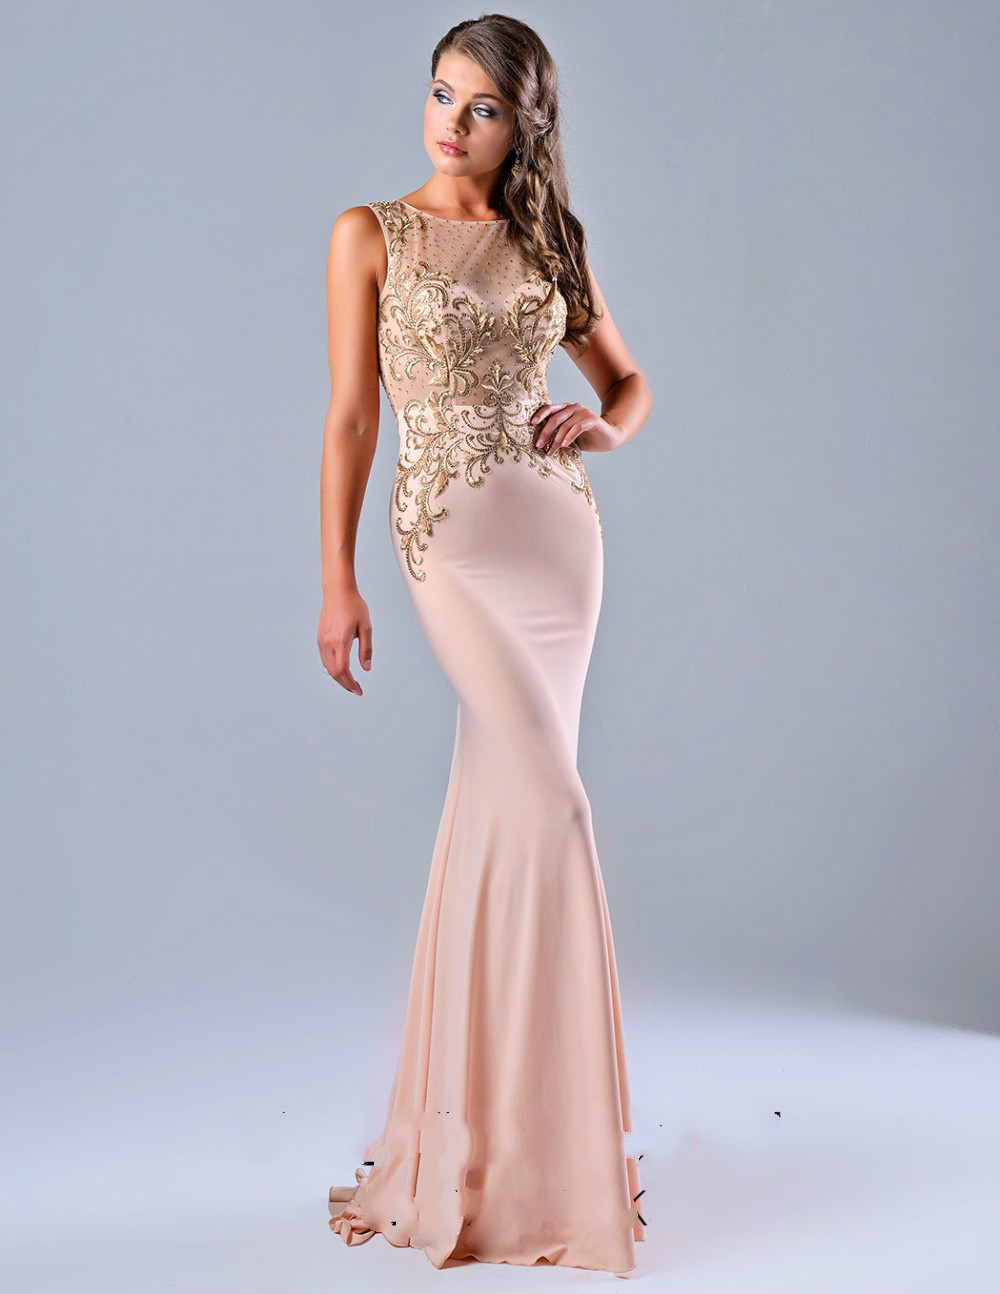 Adoration Peach Color Prom Evening Dress Beteau Neck Sheer Open Back ...